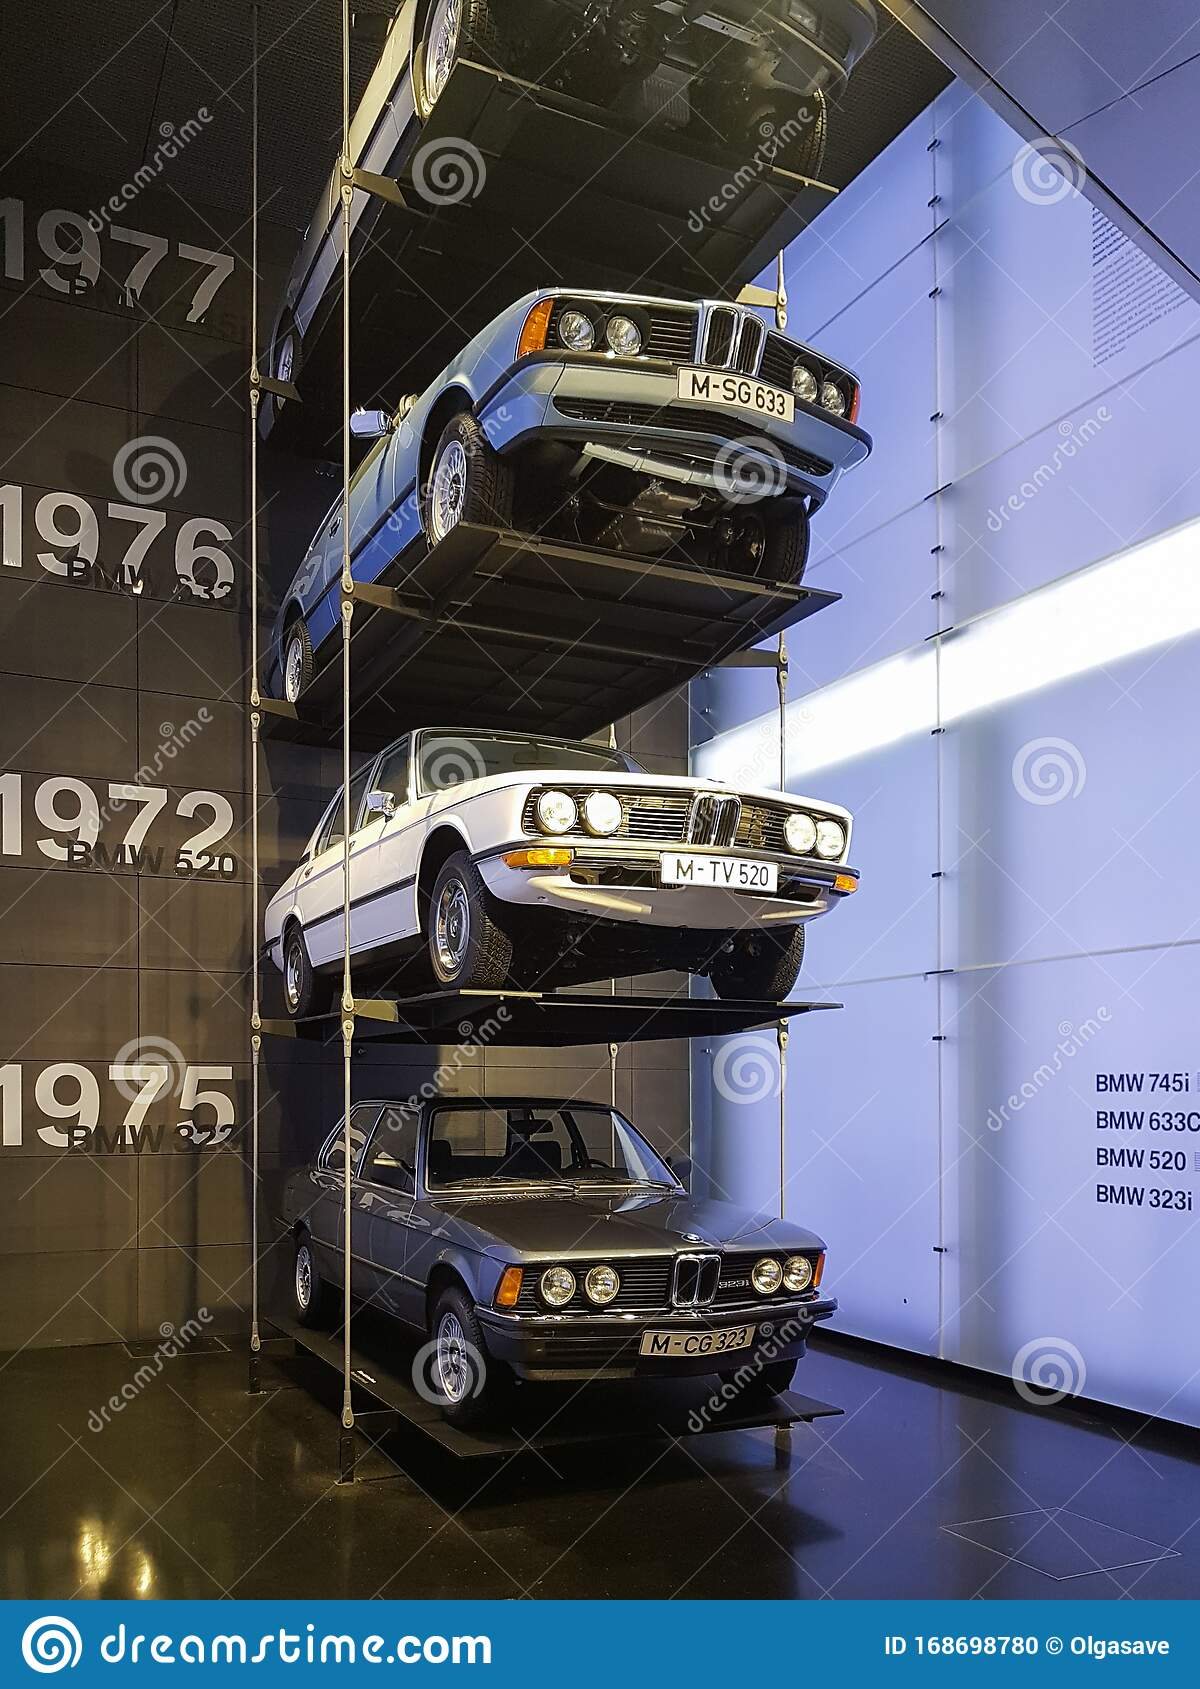 Levels Of Old Bmw Cars Exhibition In Bmw Museum Munich German Car Manufacturer Ages Of Bmw Car Models Editorial Image Image Of Cars Head 168698780